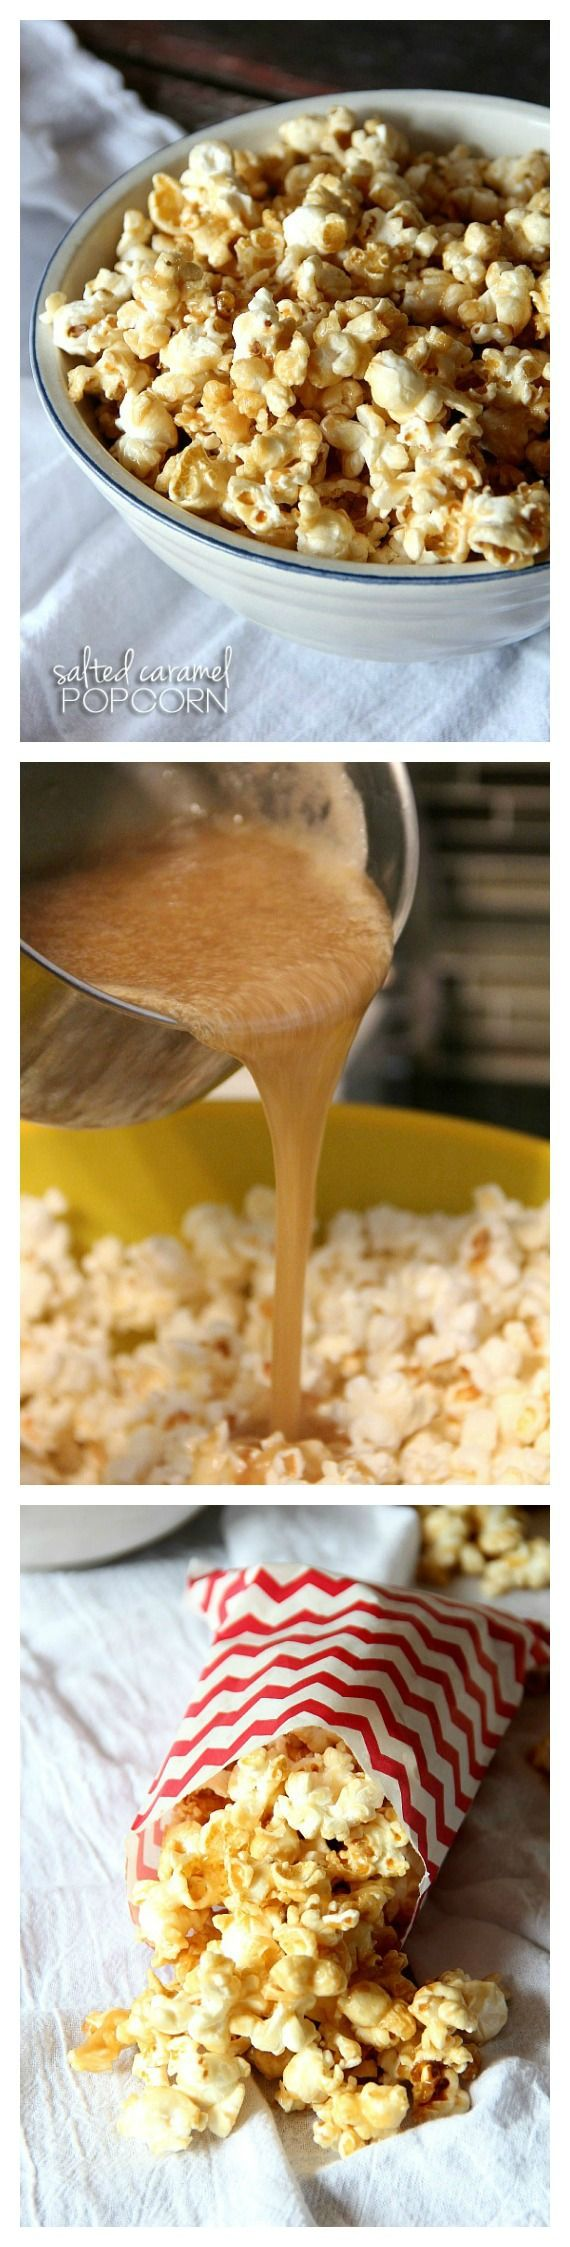 Salted Caramel Popcorn..the only caramel popcorn recipe you'll ever need!!!